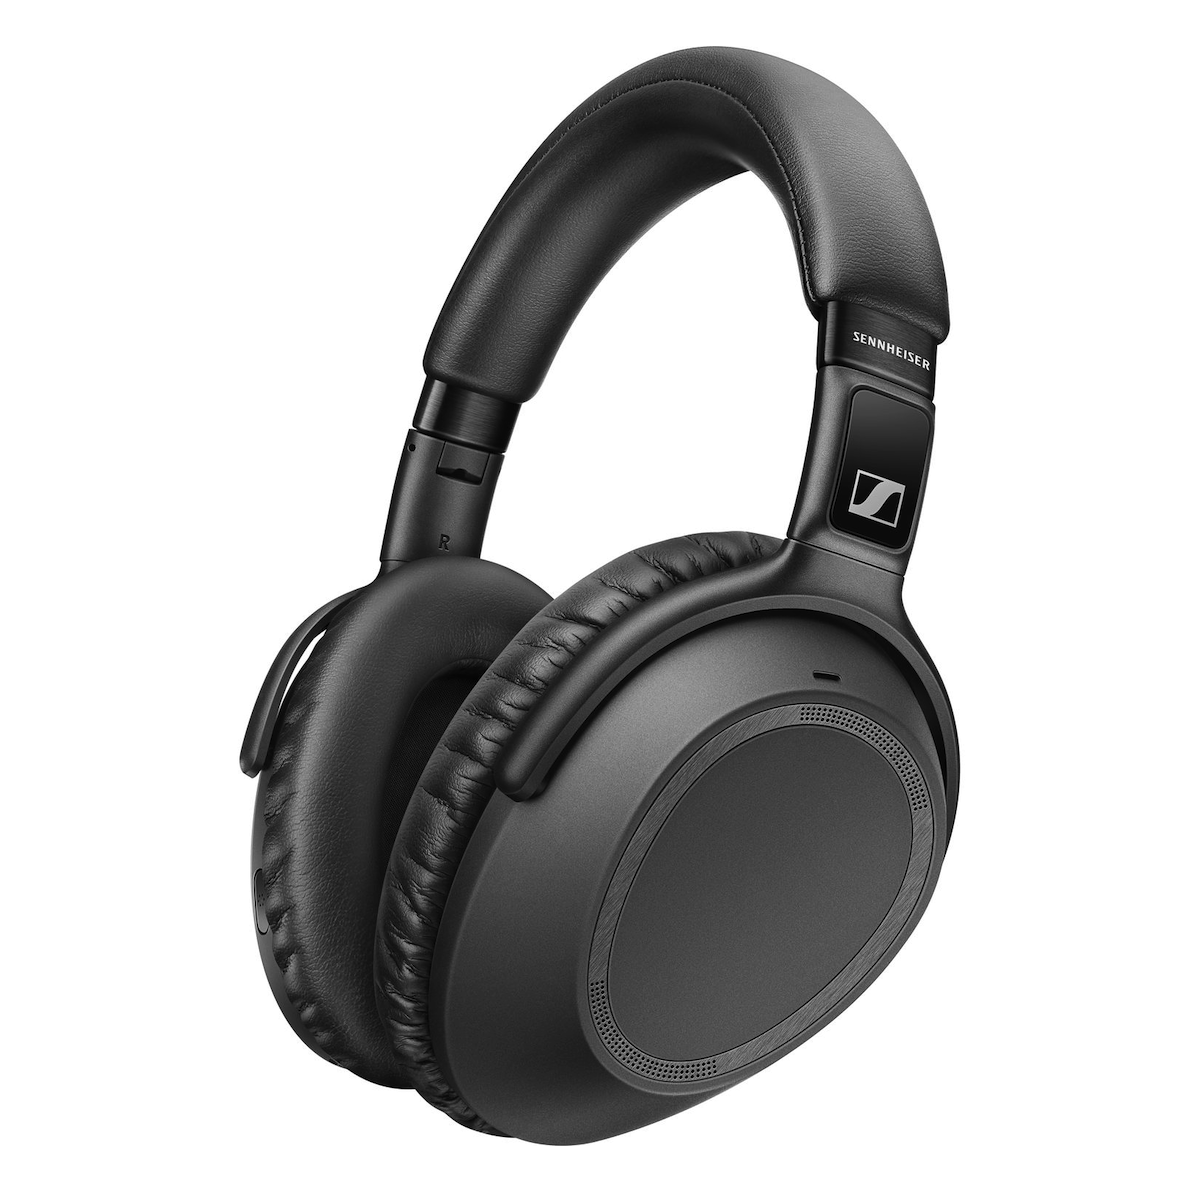 Sennheiser PXC 550-II - Wireless Headphone with Noise Cancellation - AVStore.in